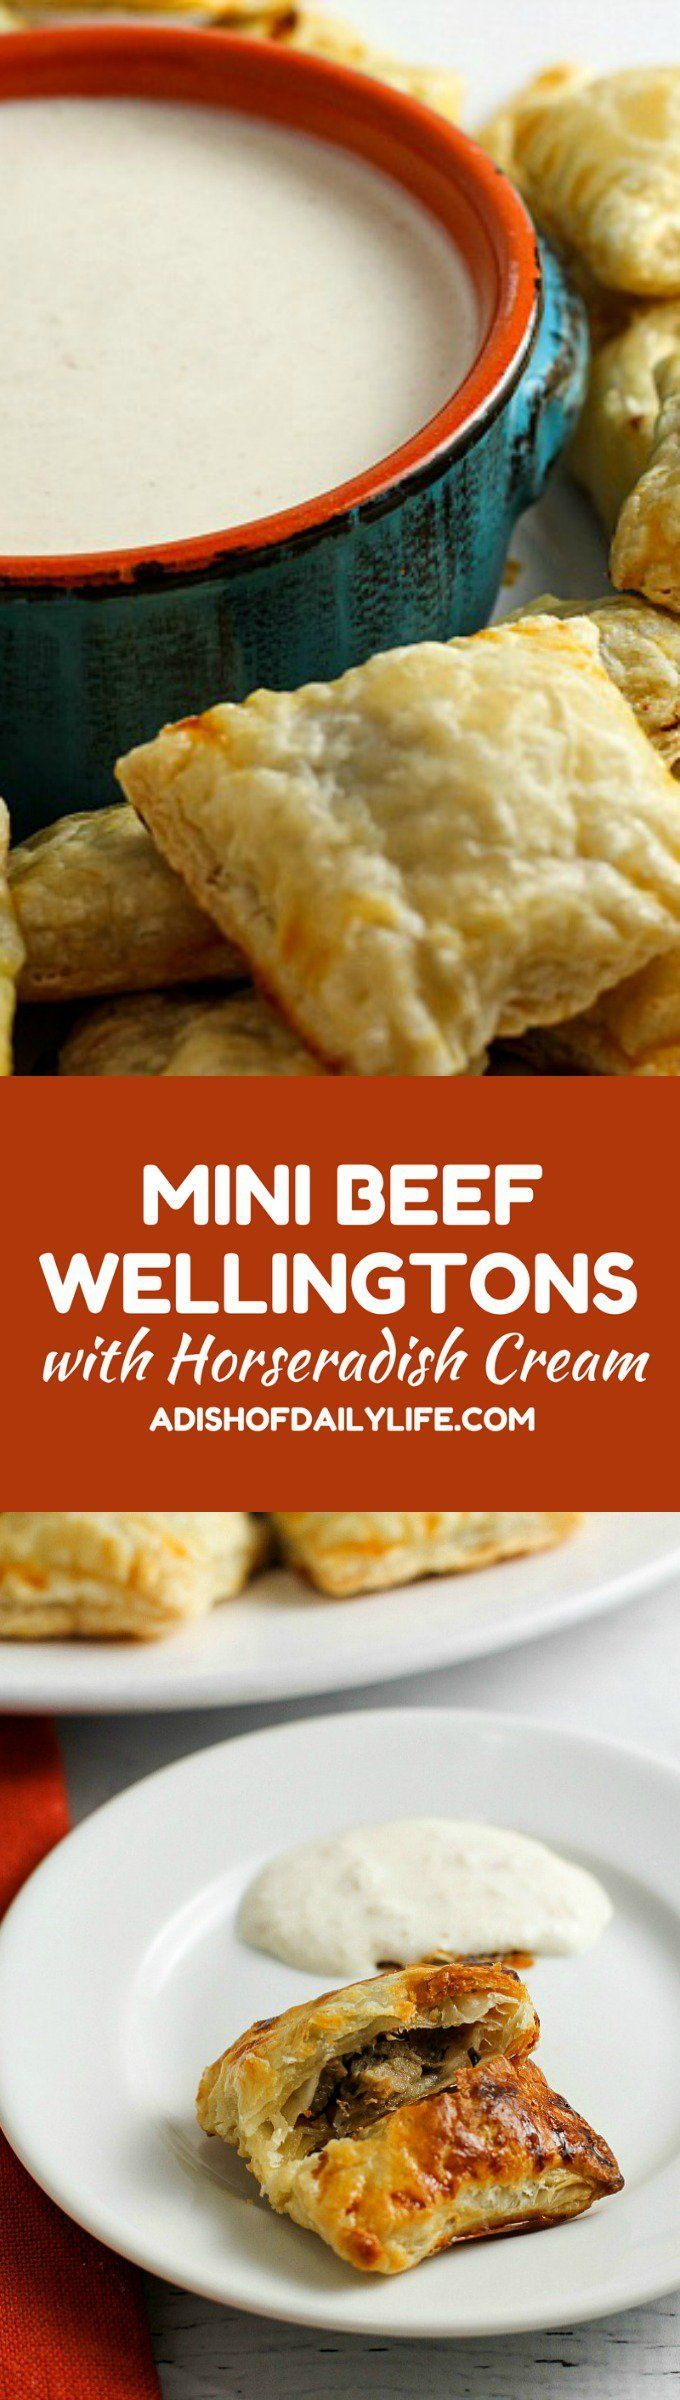 These Mini Beef Wellingtons with Horseradish Cream are an elegant appetizer, perfect for special occasions!